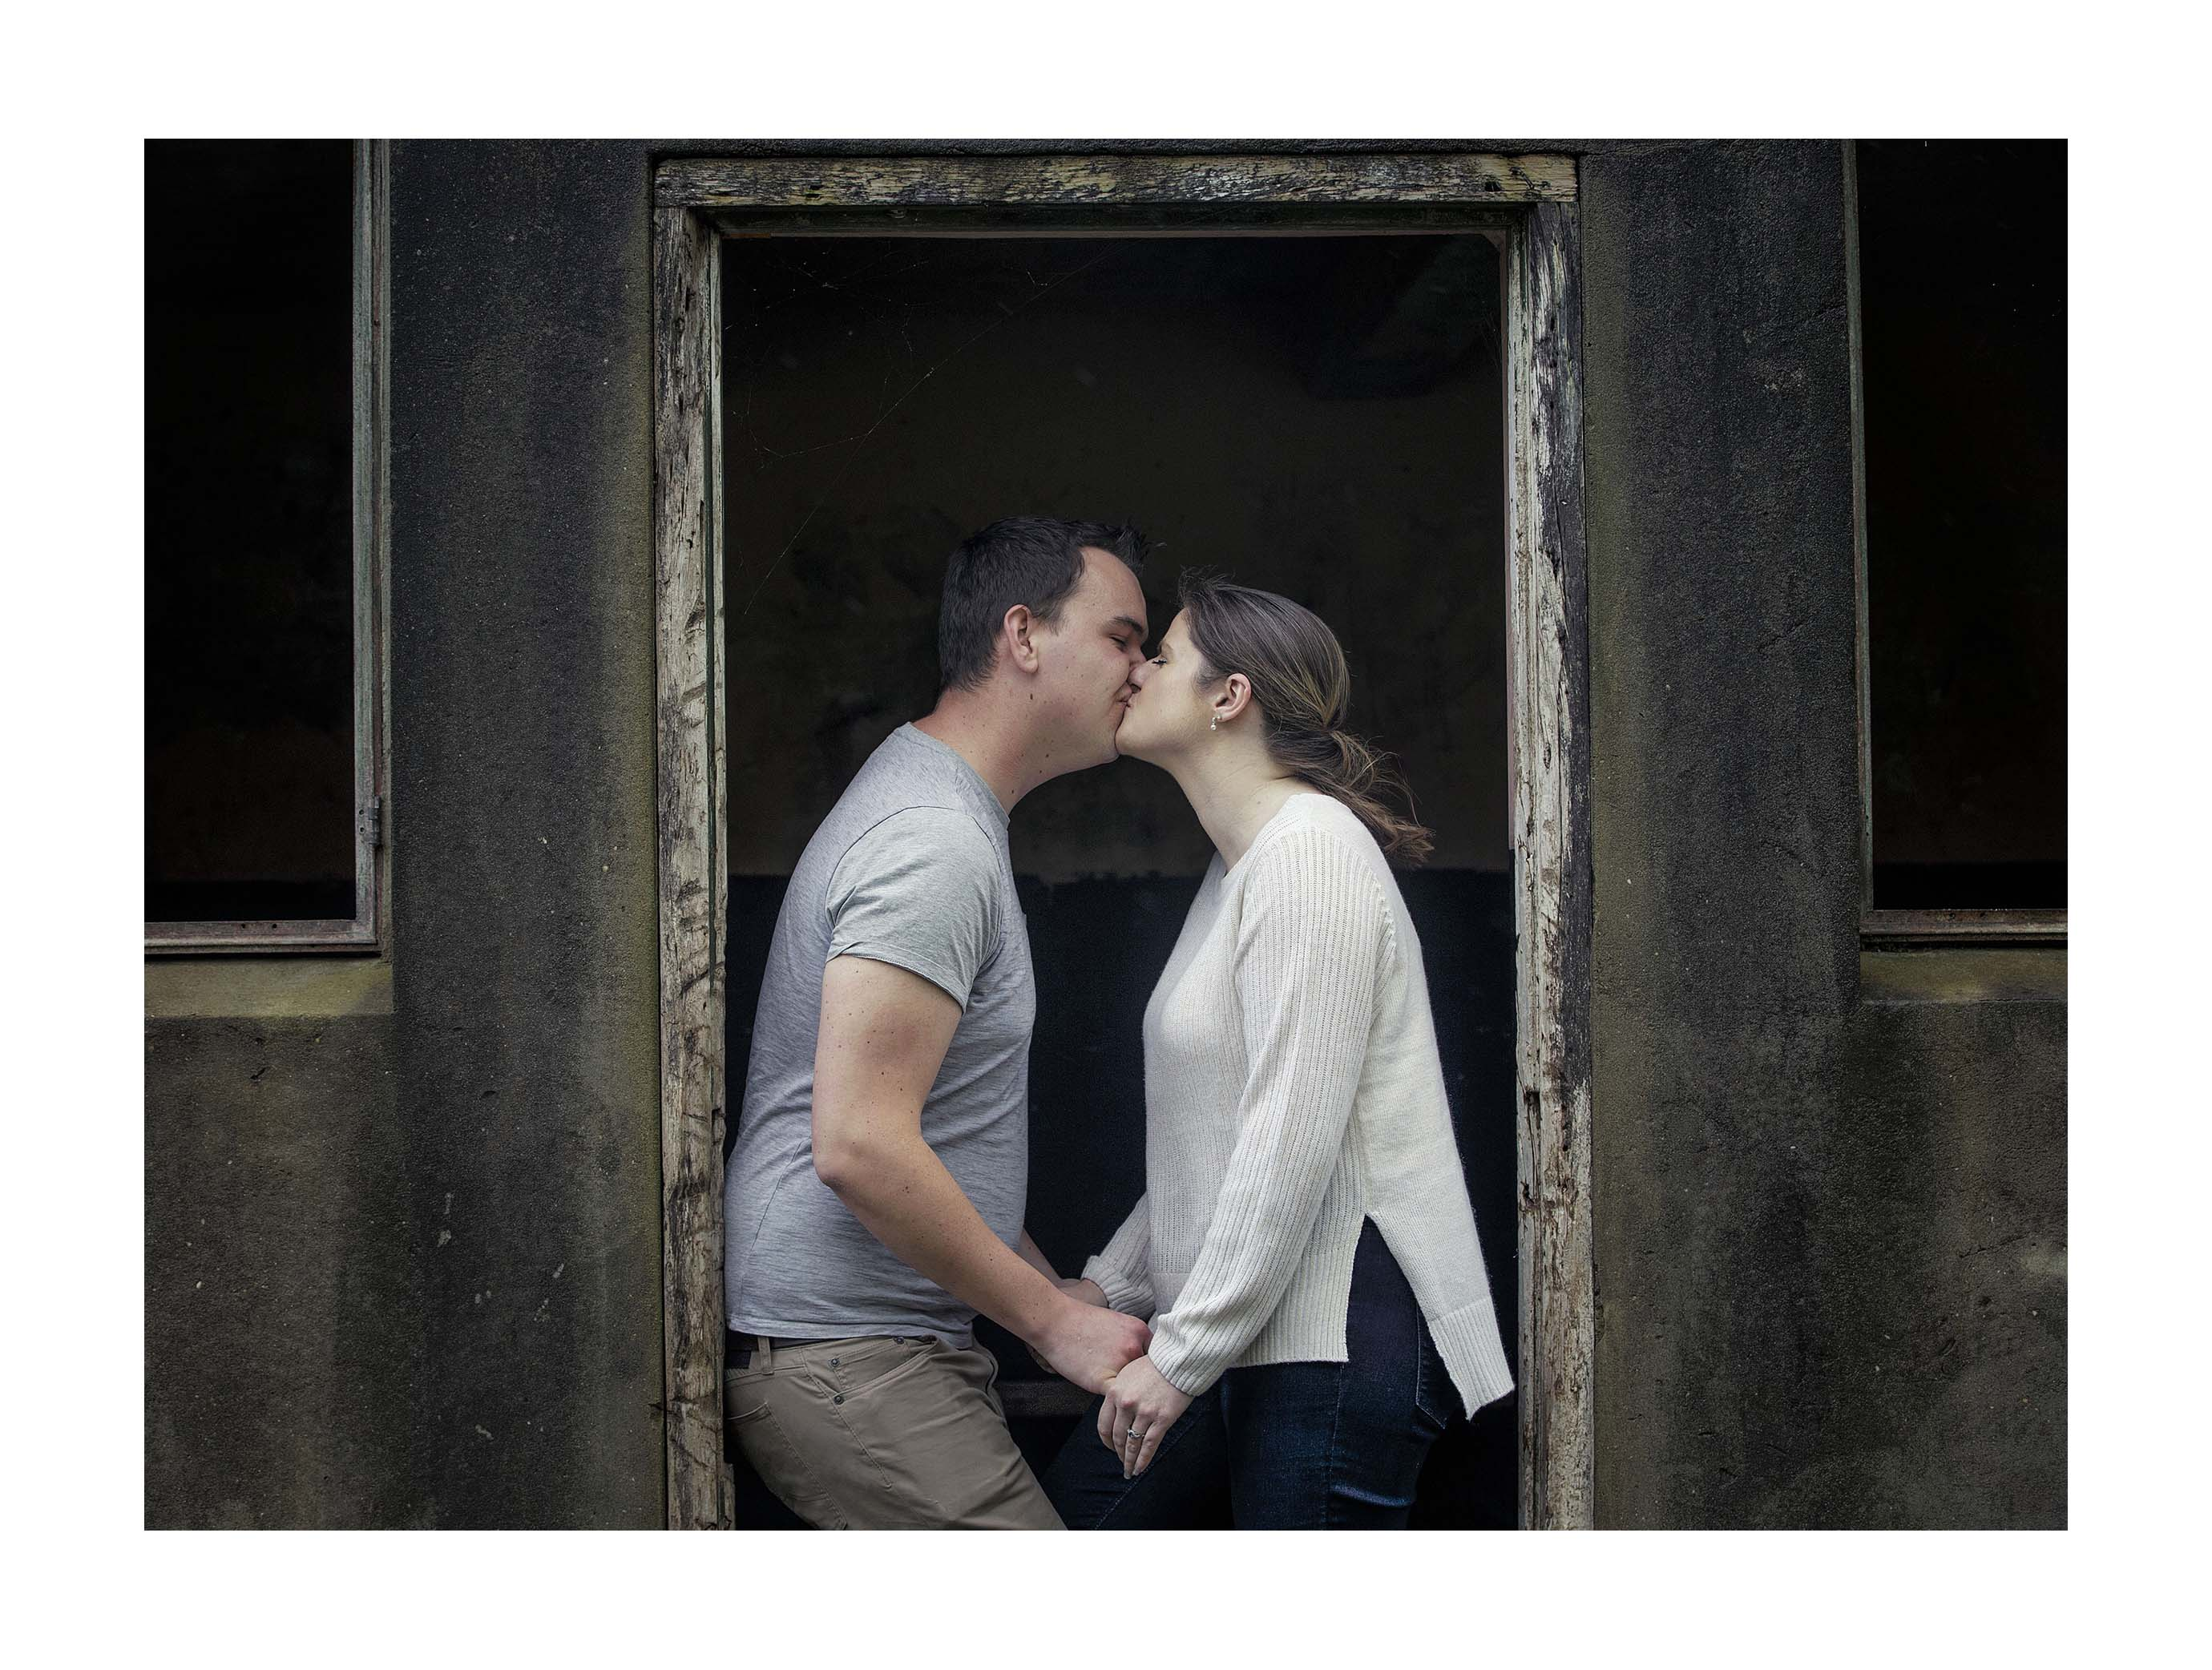 Engagement photo by Auckland wedding photographer Chris Loufte www.theweddingphotographer.co.nz